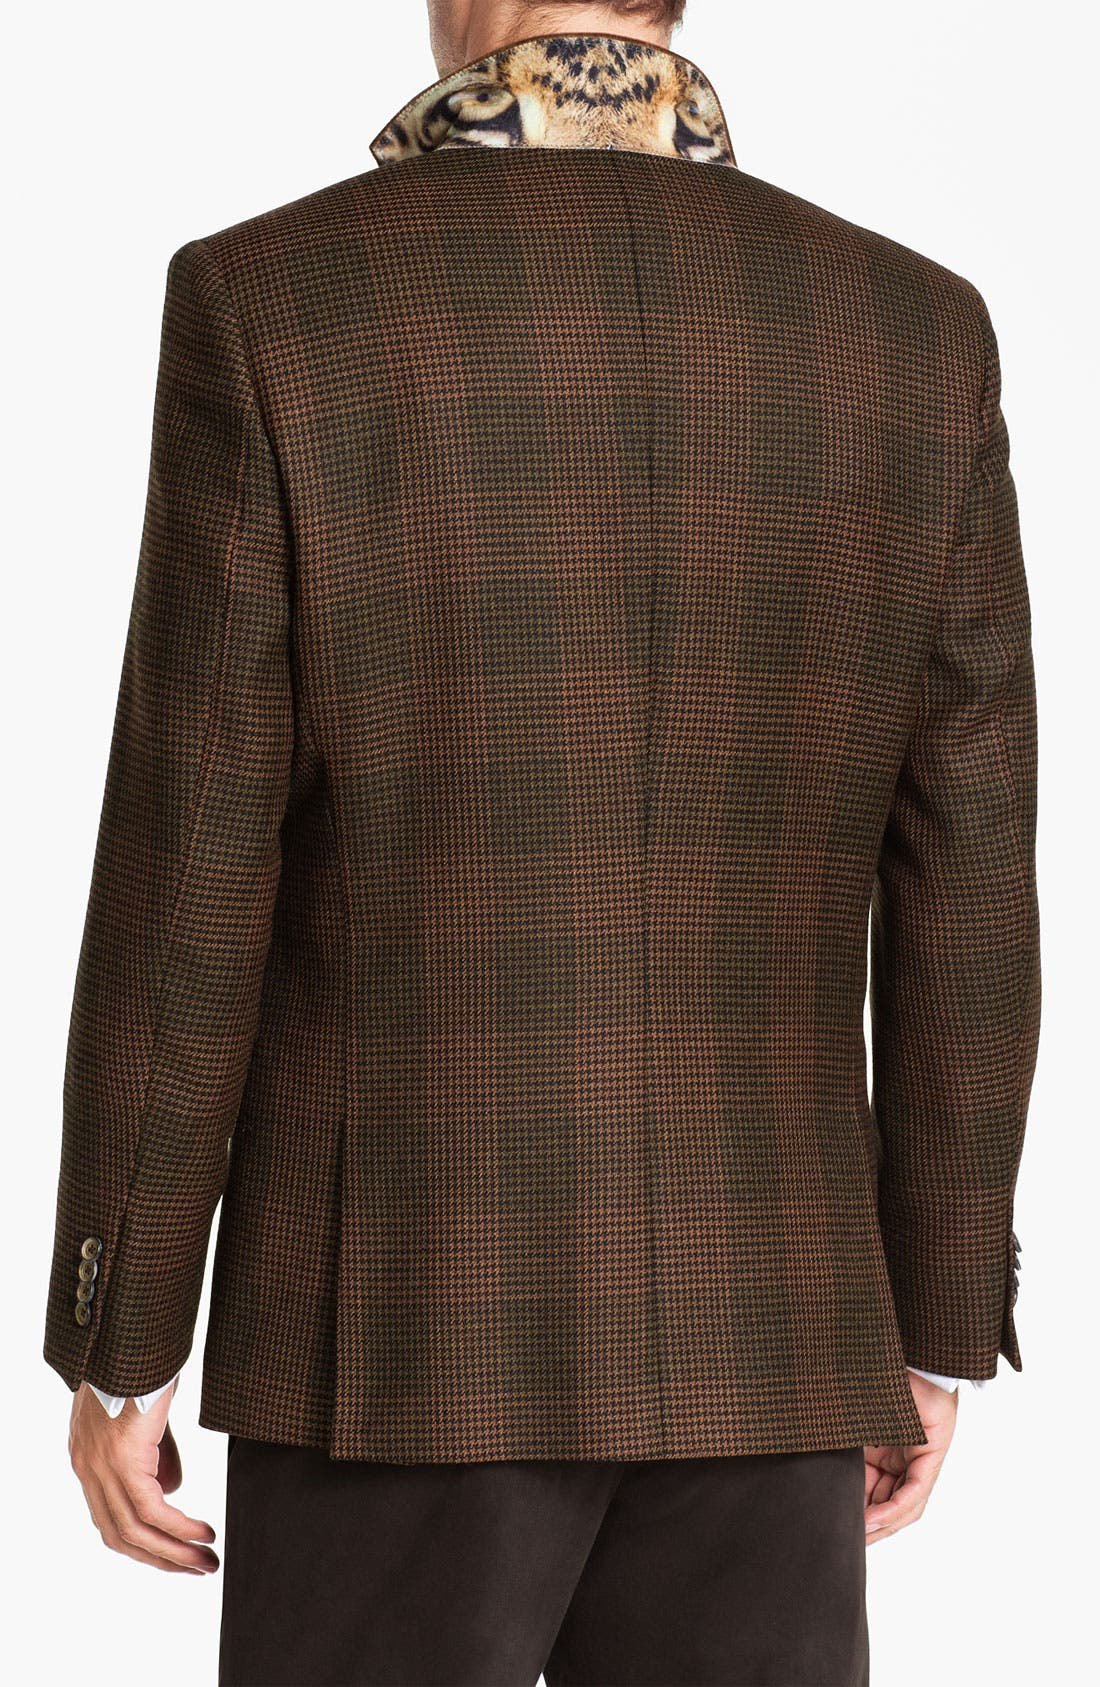 Alternate Image 2  - Ted Baker London 'Global' Trim Fit Check Sportcoat